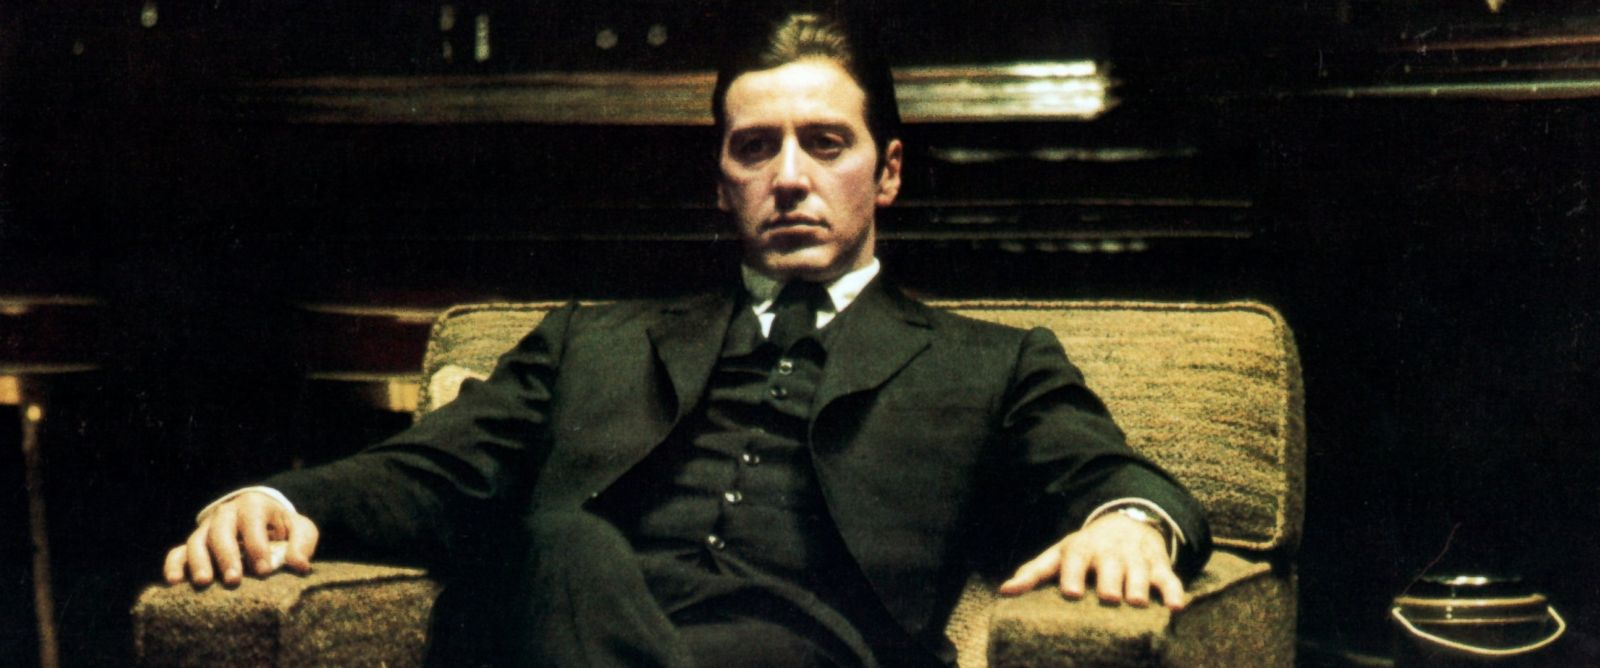 Moral Lessons from The Godfather Films - Wisdom & Folly Blog